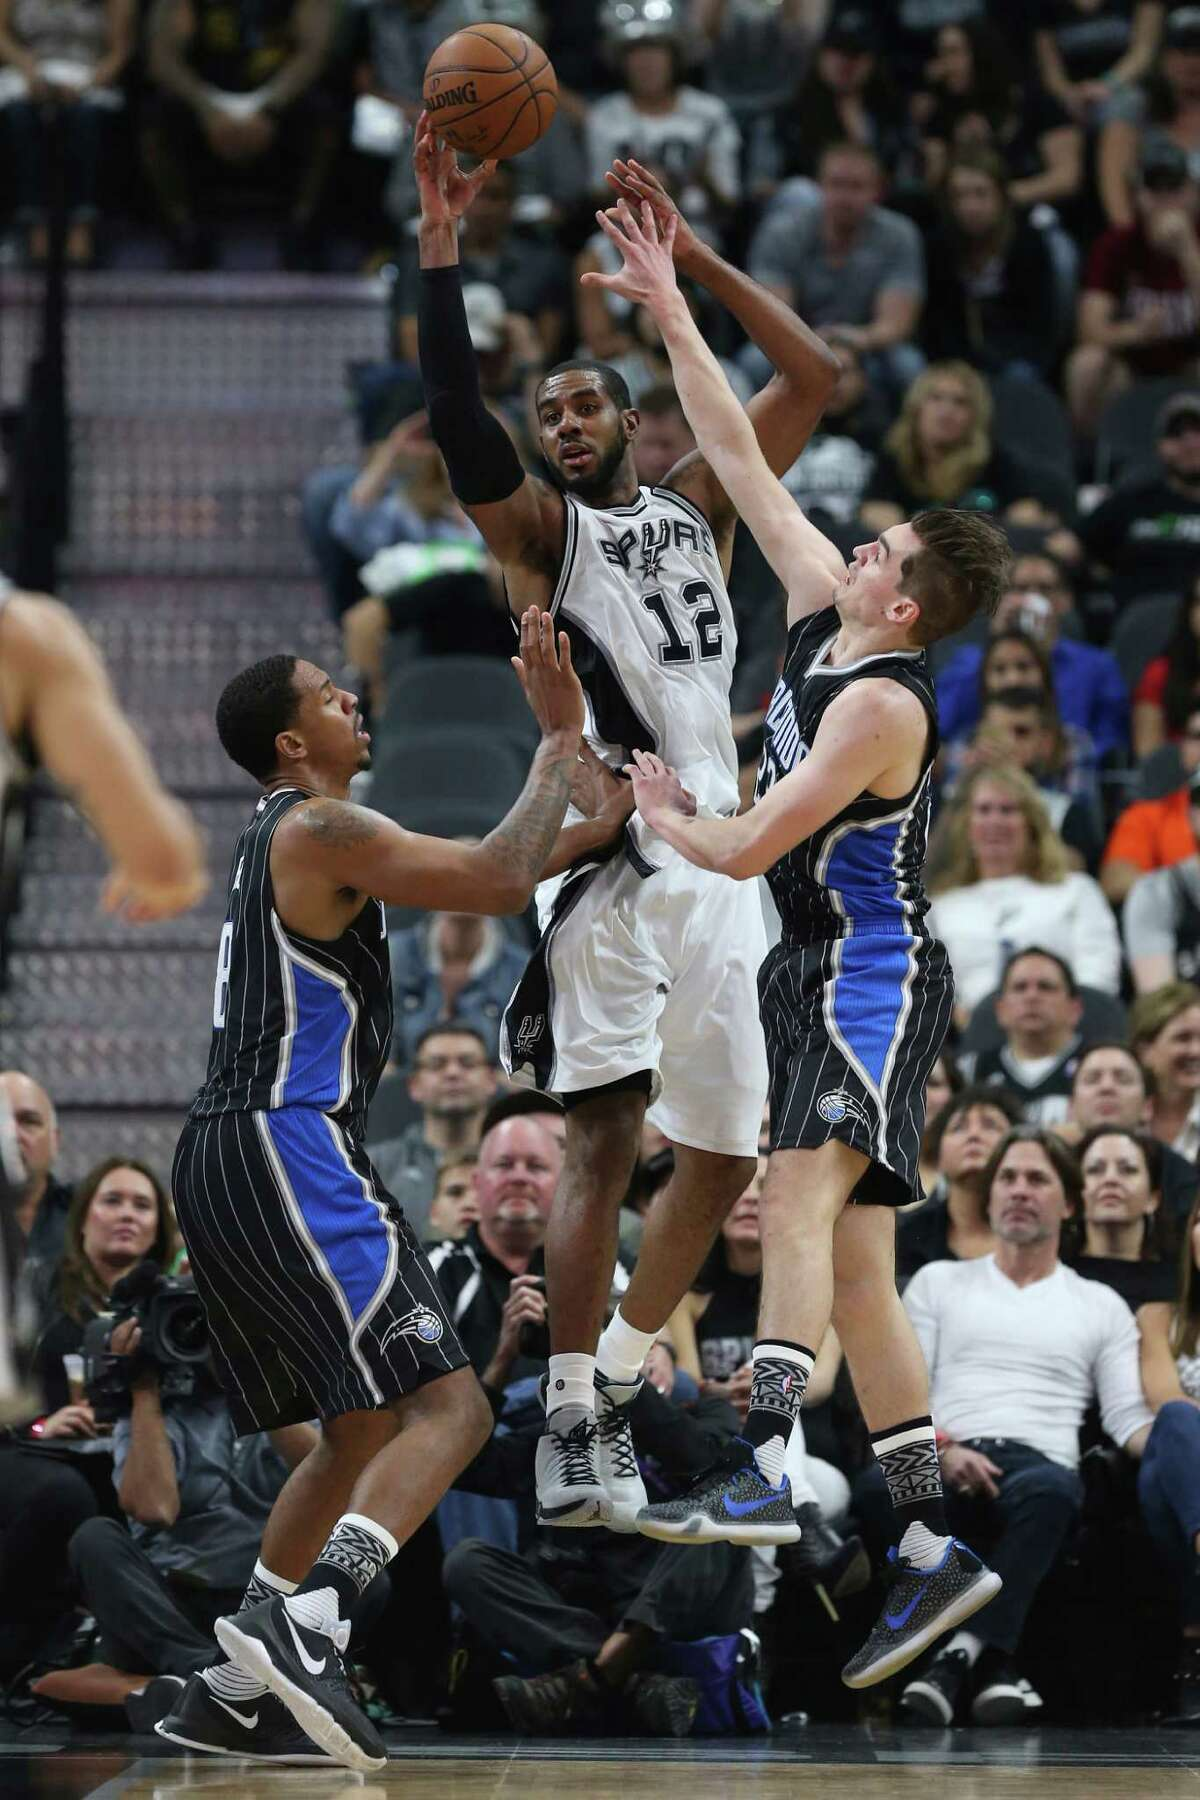 San Antonio Spurs' LaMarcus Aldridge passes between Orlando Magic's Channing Frye, left, and Mario Hezonja during the second half at the AT&T Center, Monday, Feb. 1, 2016